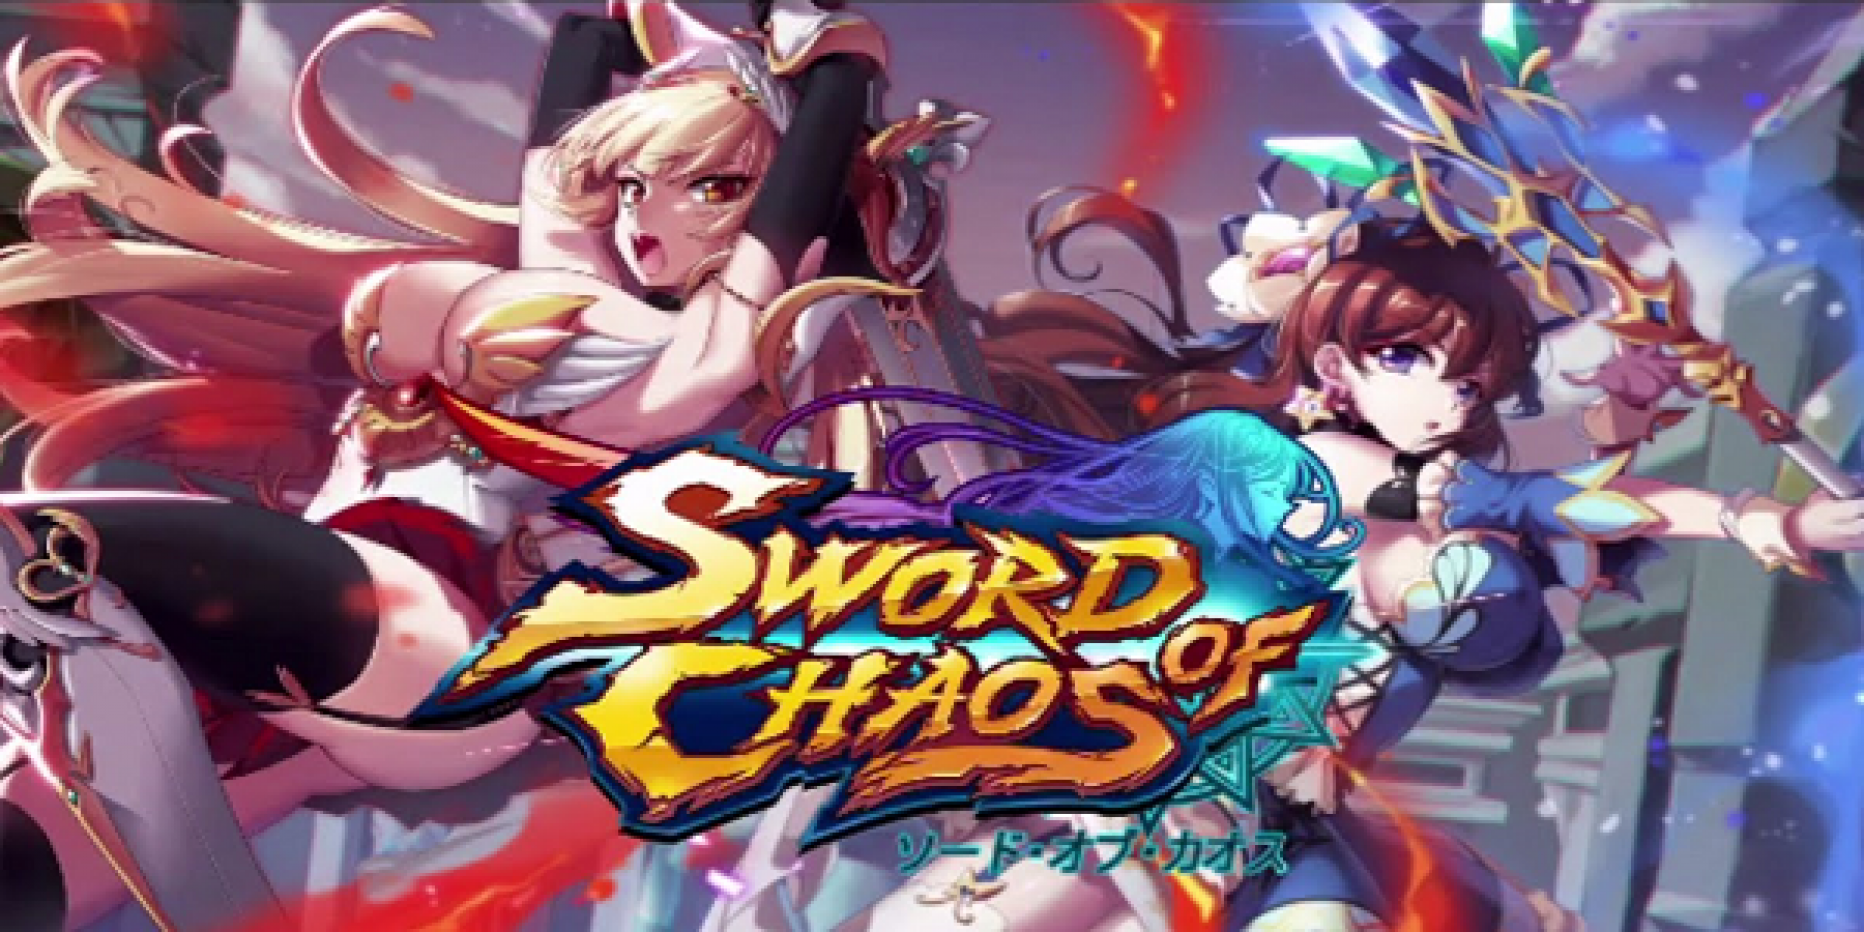 Sword of Chaos Triche Astuce Generateur